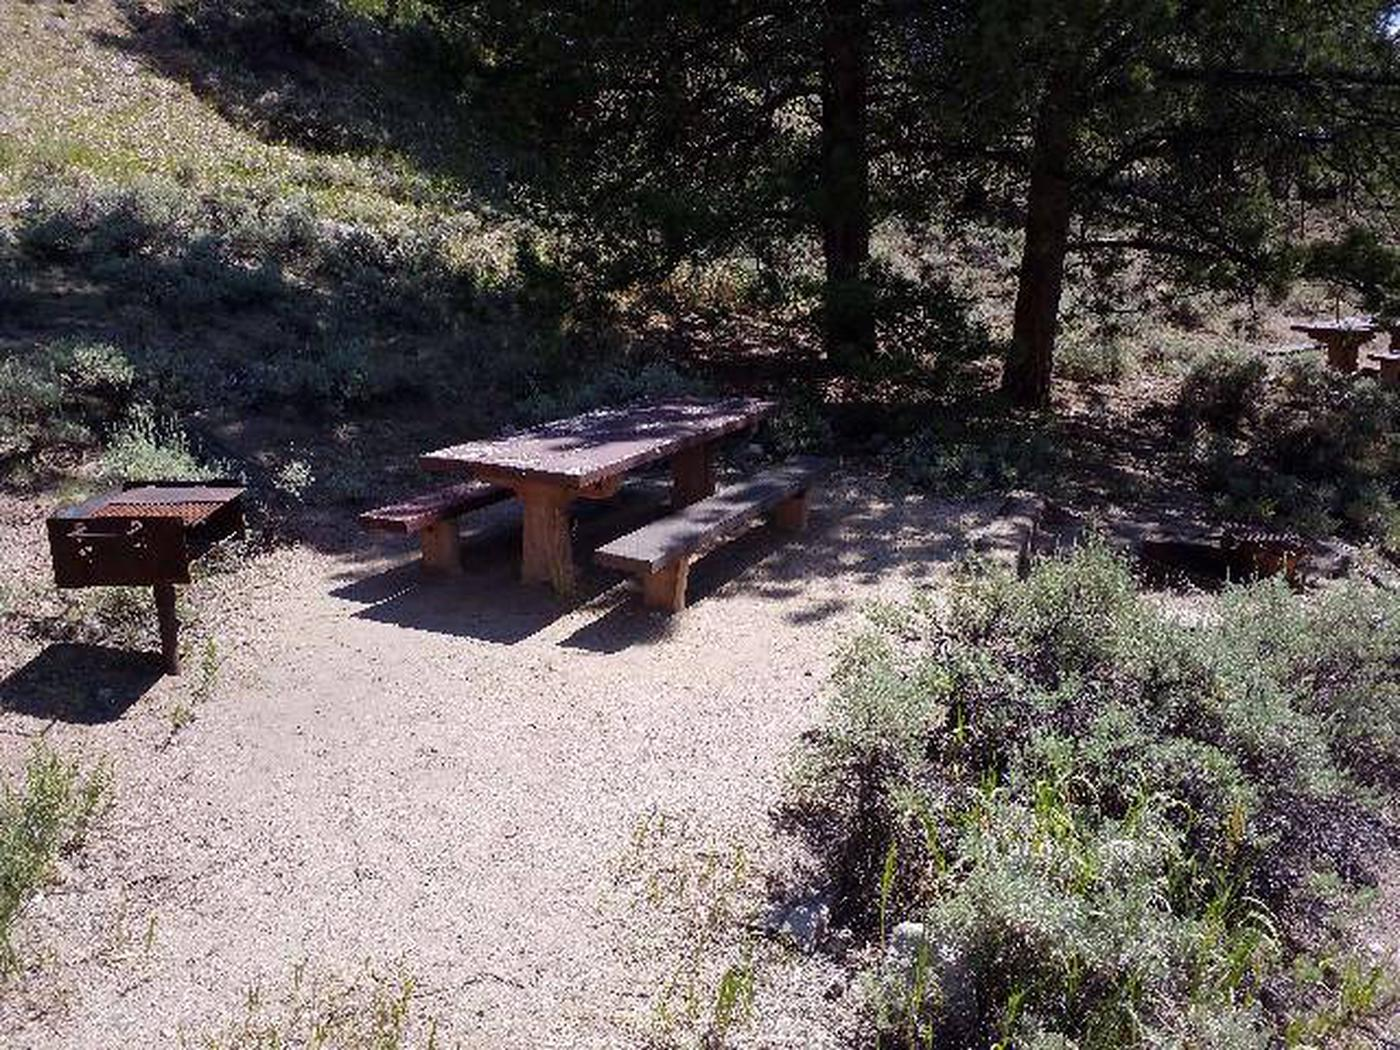 Lakeview Campground, site E7 picnic table and grill